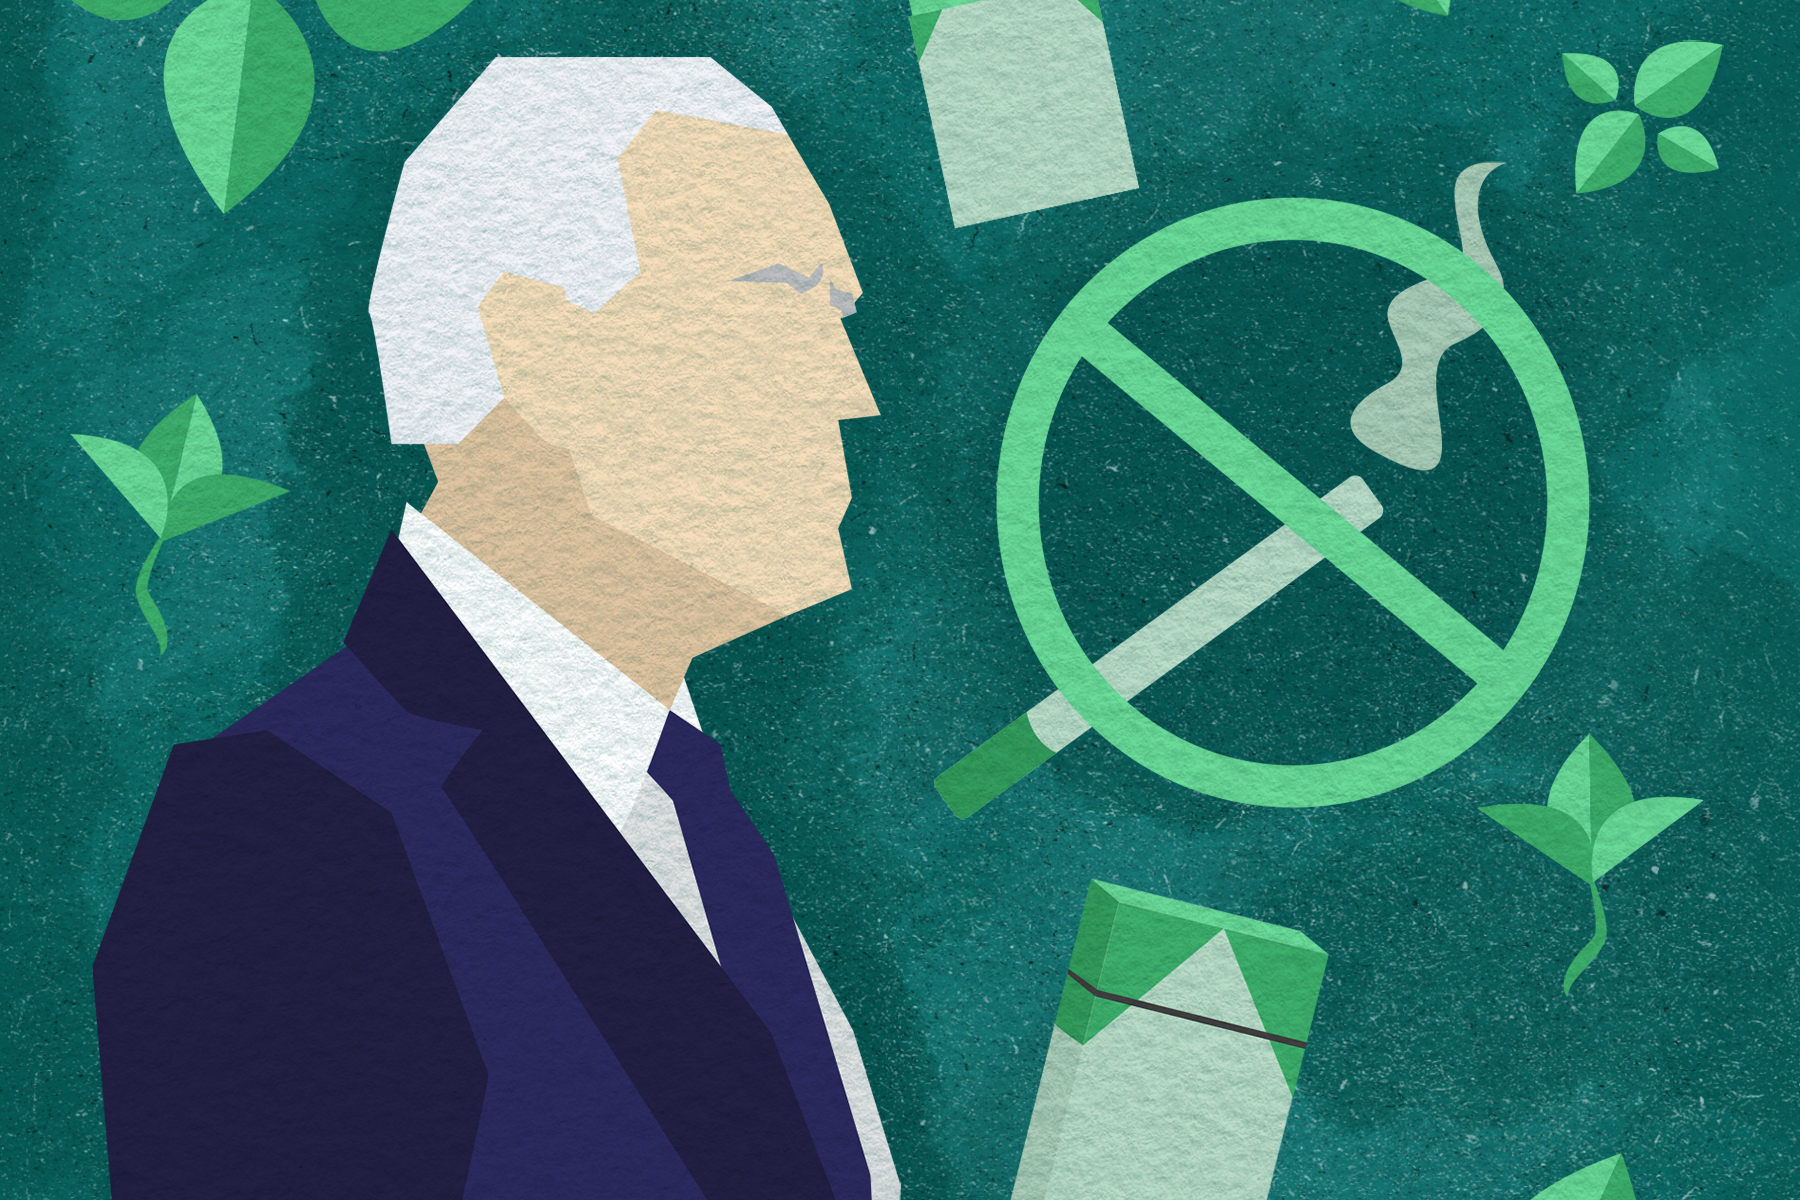 Illustration by Alicia Paauwe of symbols representing menthol cigarettes and a drawing of Joe Biden